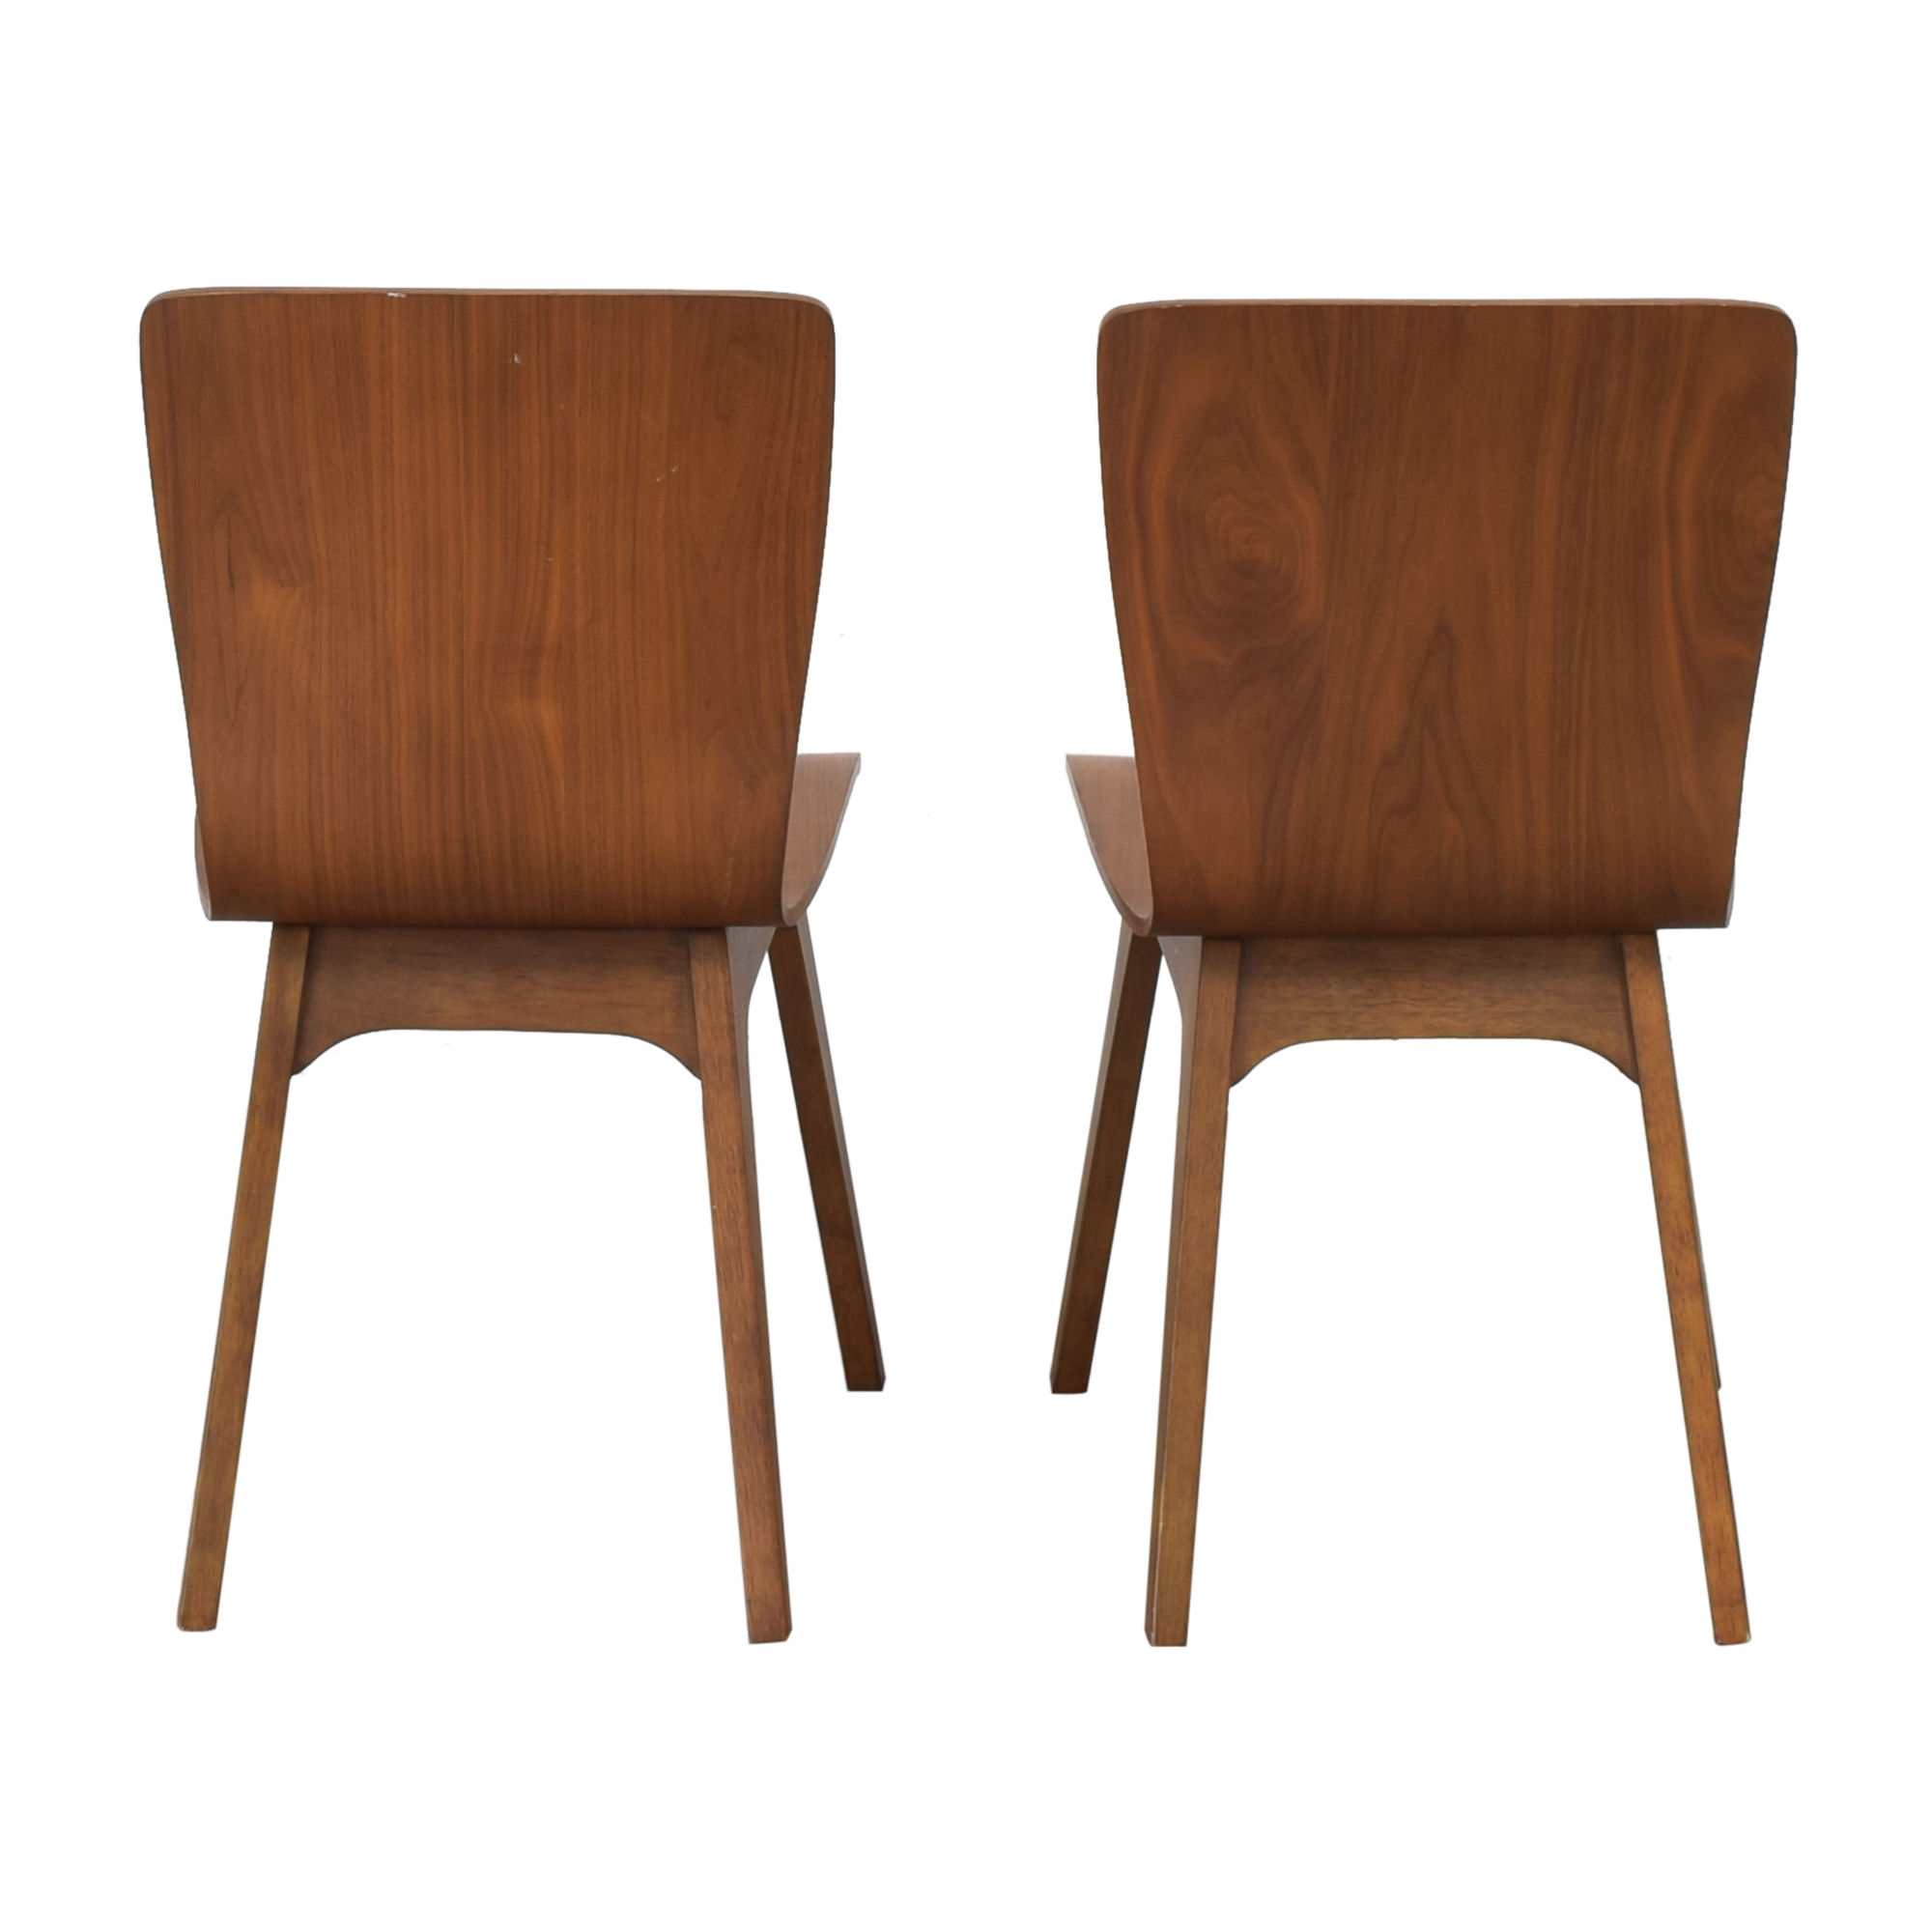 West Elm Crest Brentwood Chairs / Dining Chairs